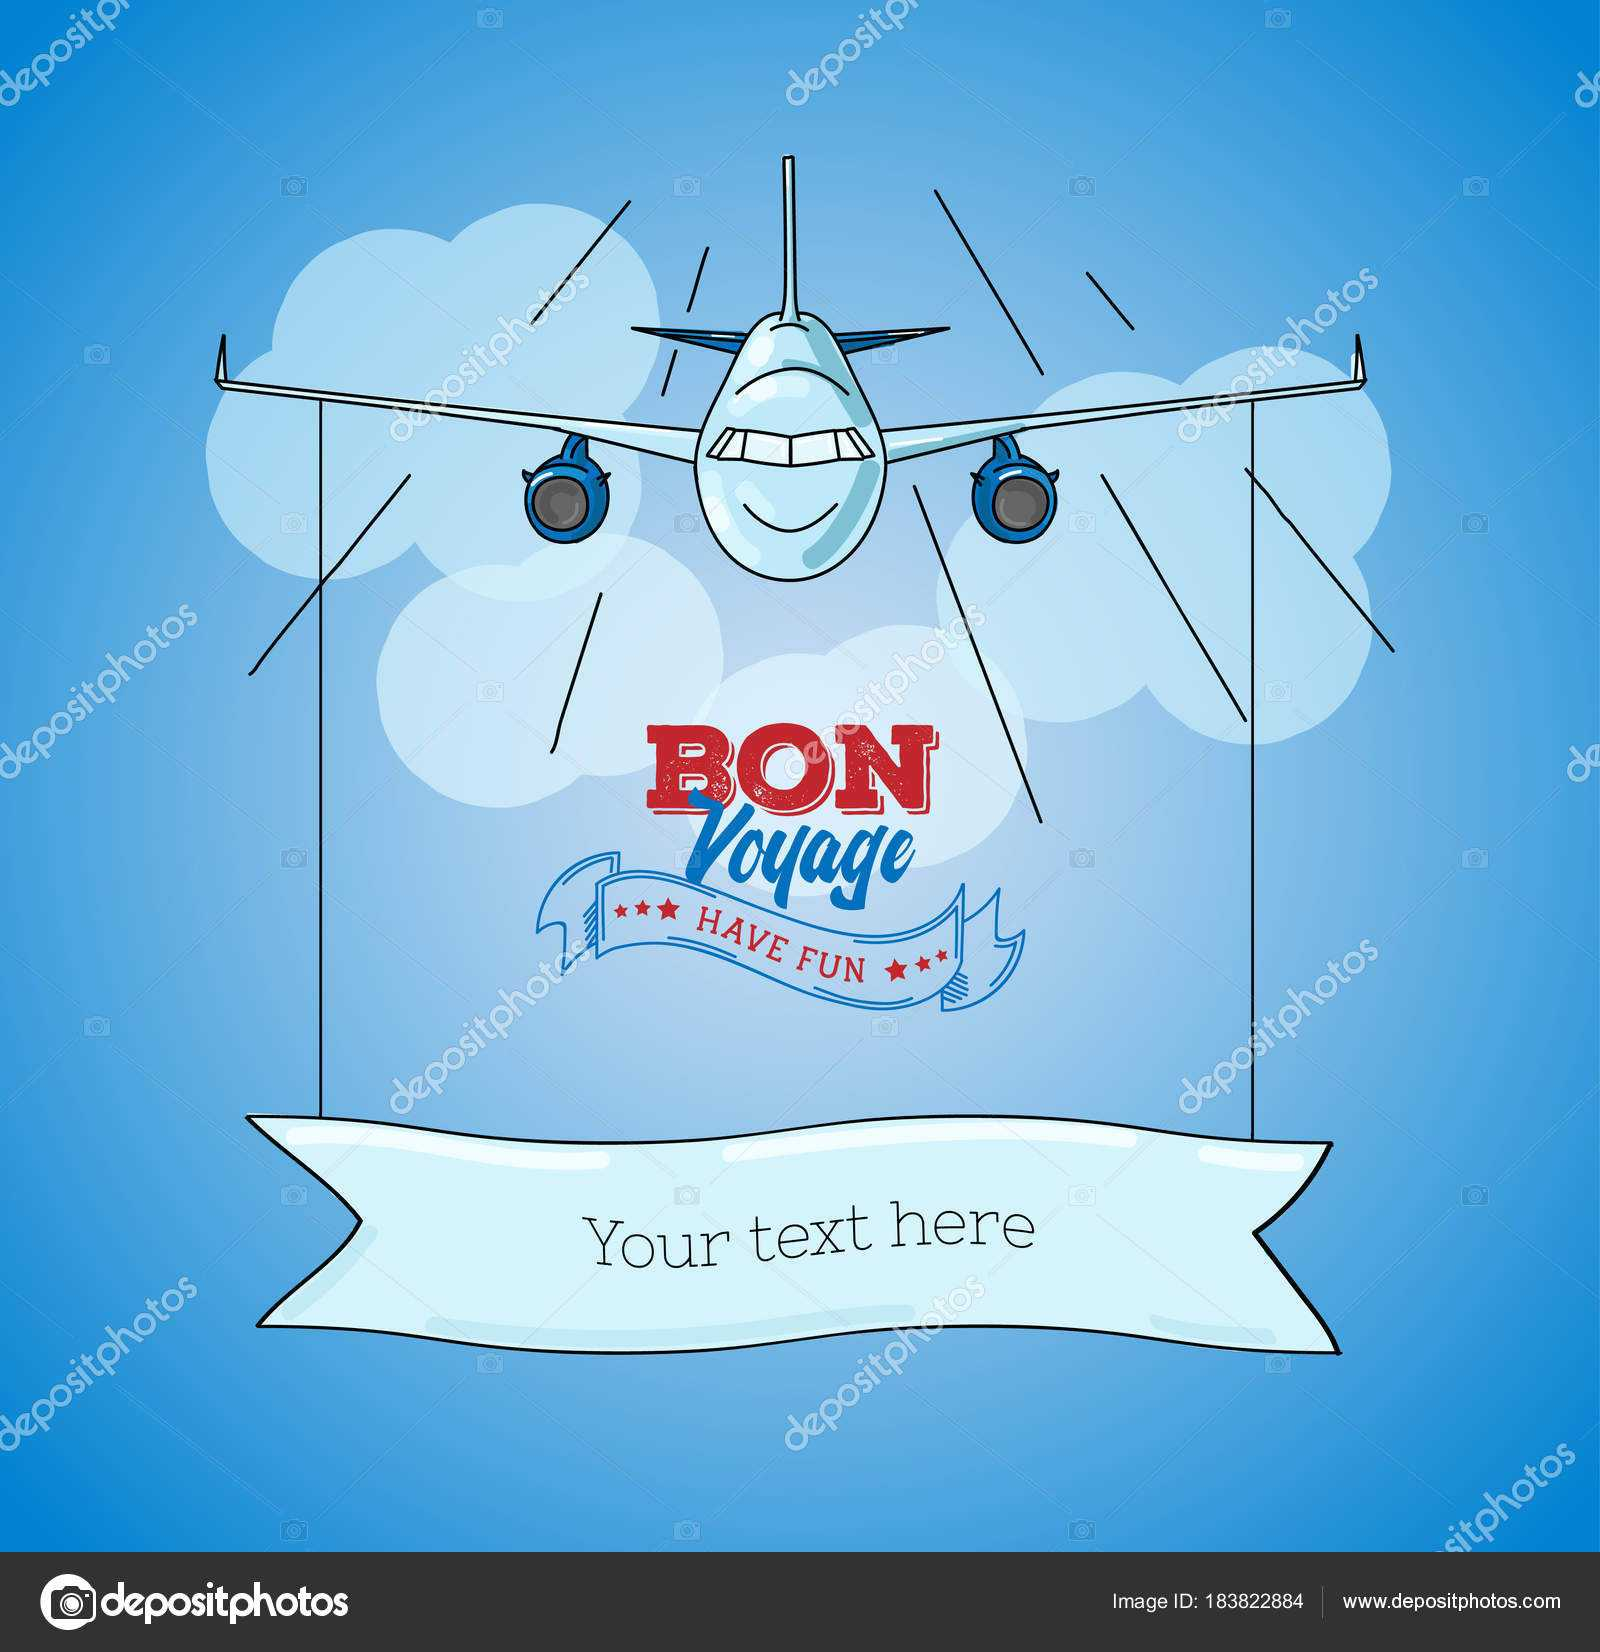 Card Template With Plane Graphic Illustration On Blue Sky Within Bon Voyage Card Template